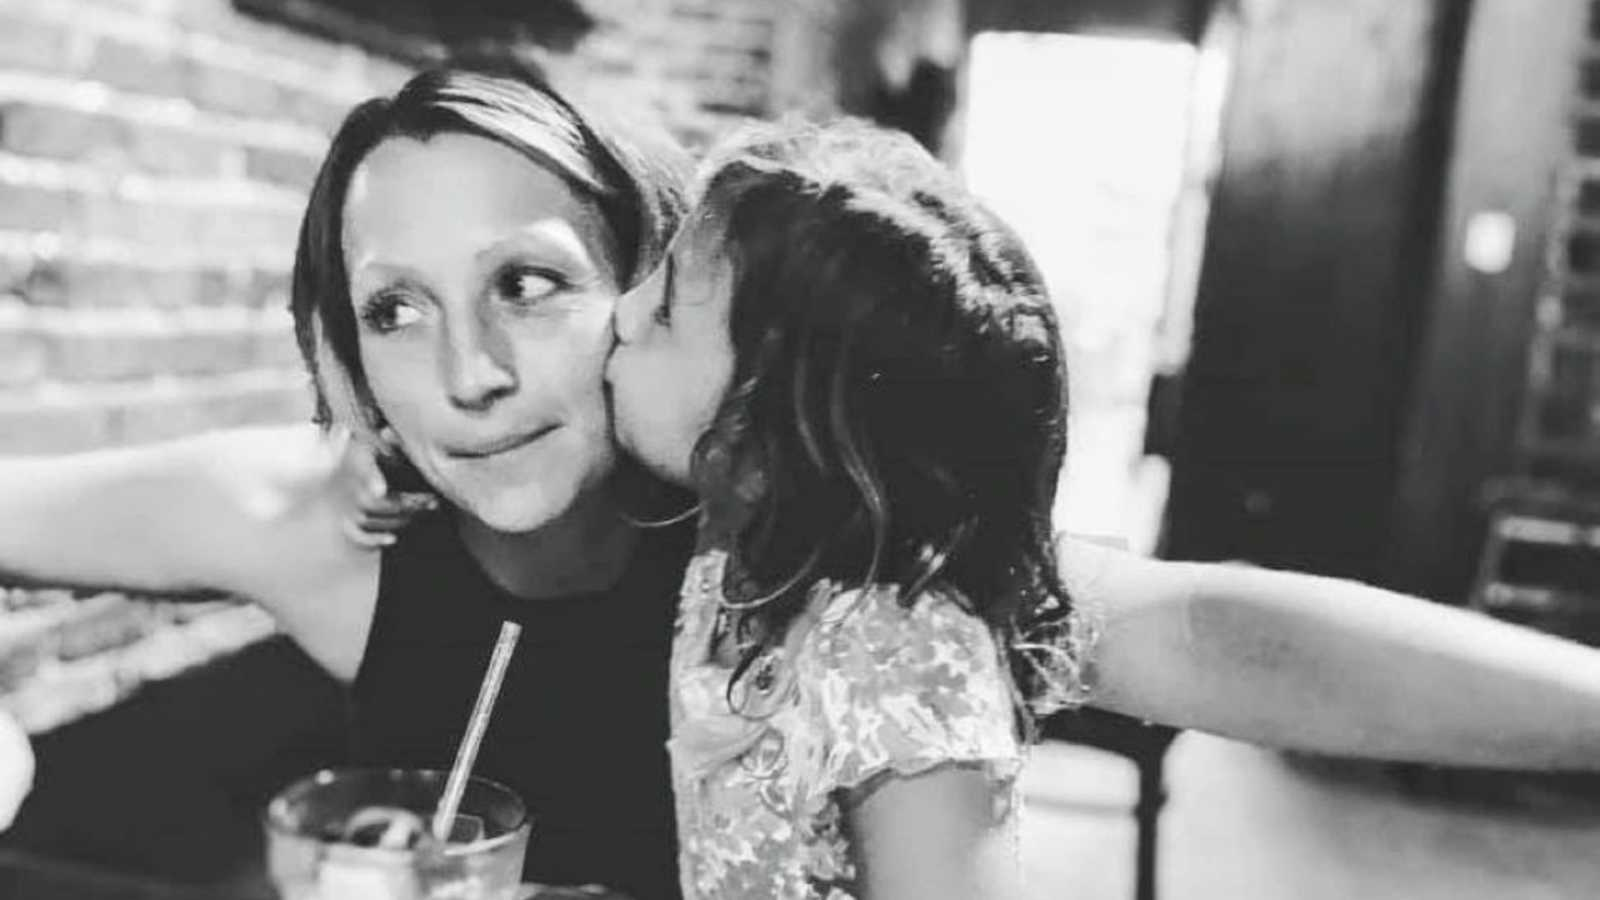 Mom takes a photo with her daughter while she kisses her on the cheek